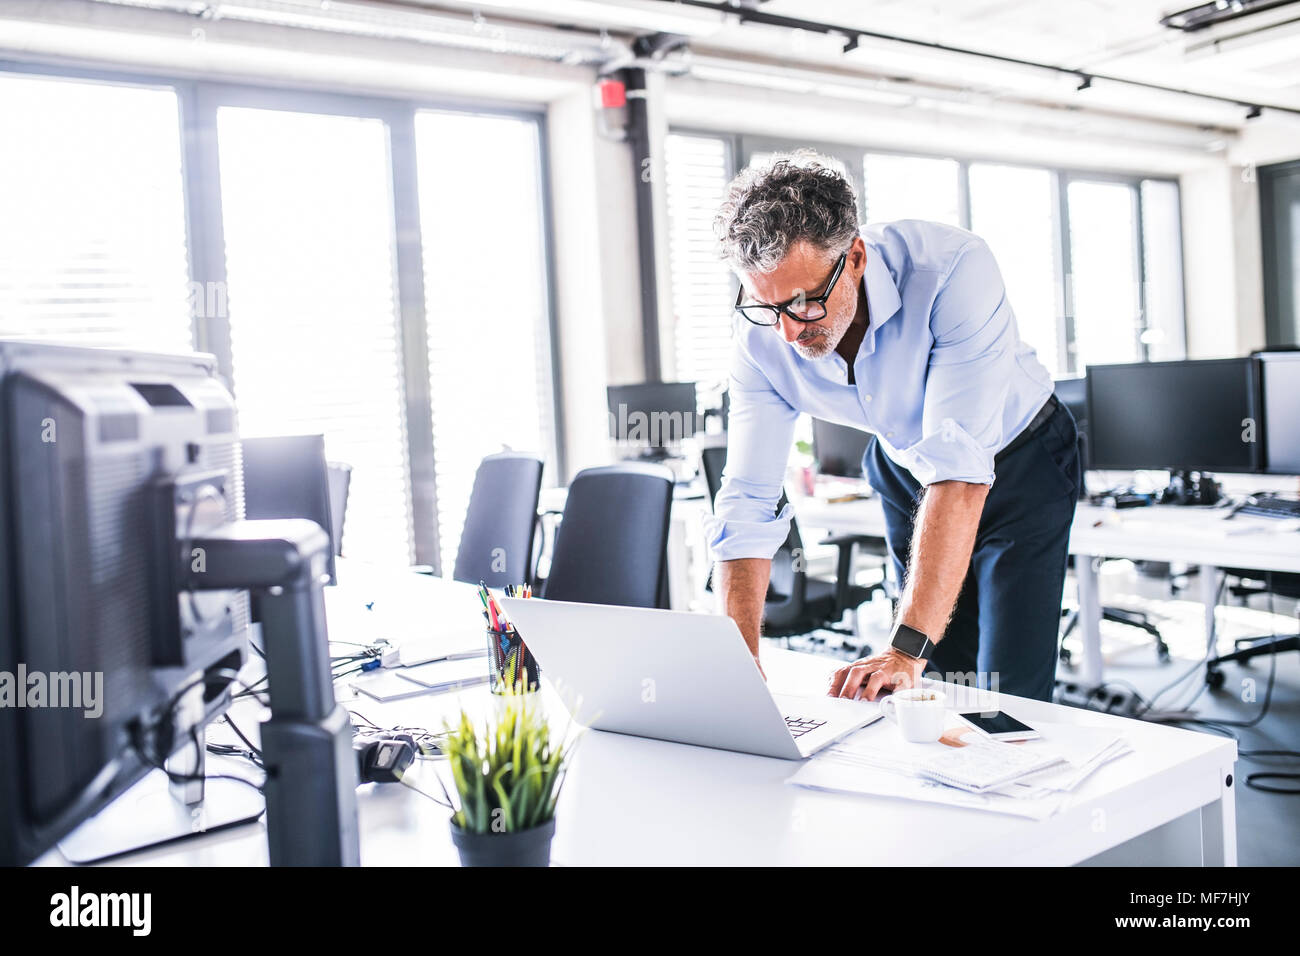 Mature businessman using laptop at desk in office - Stock Image